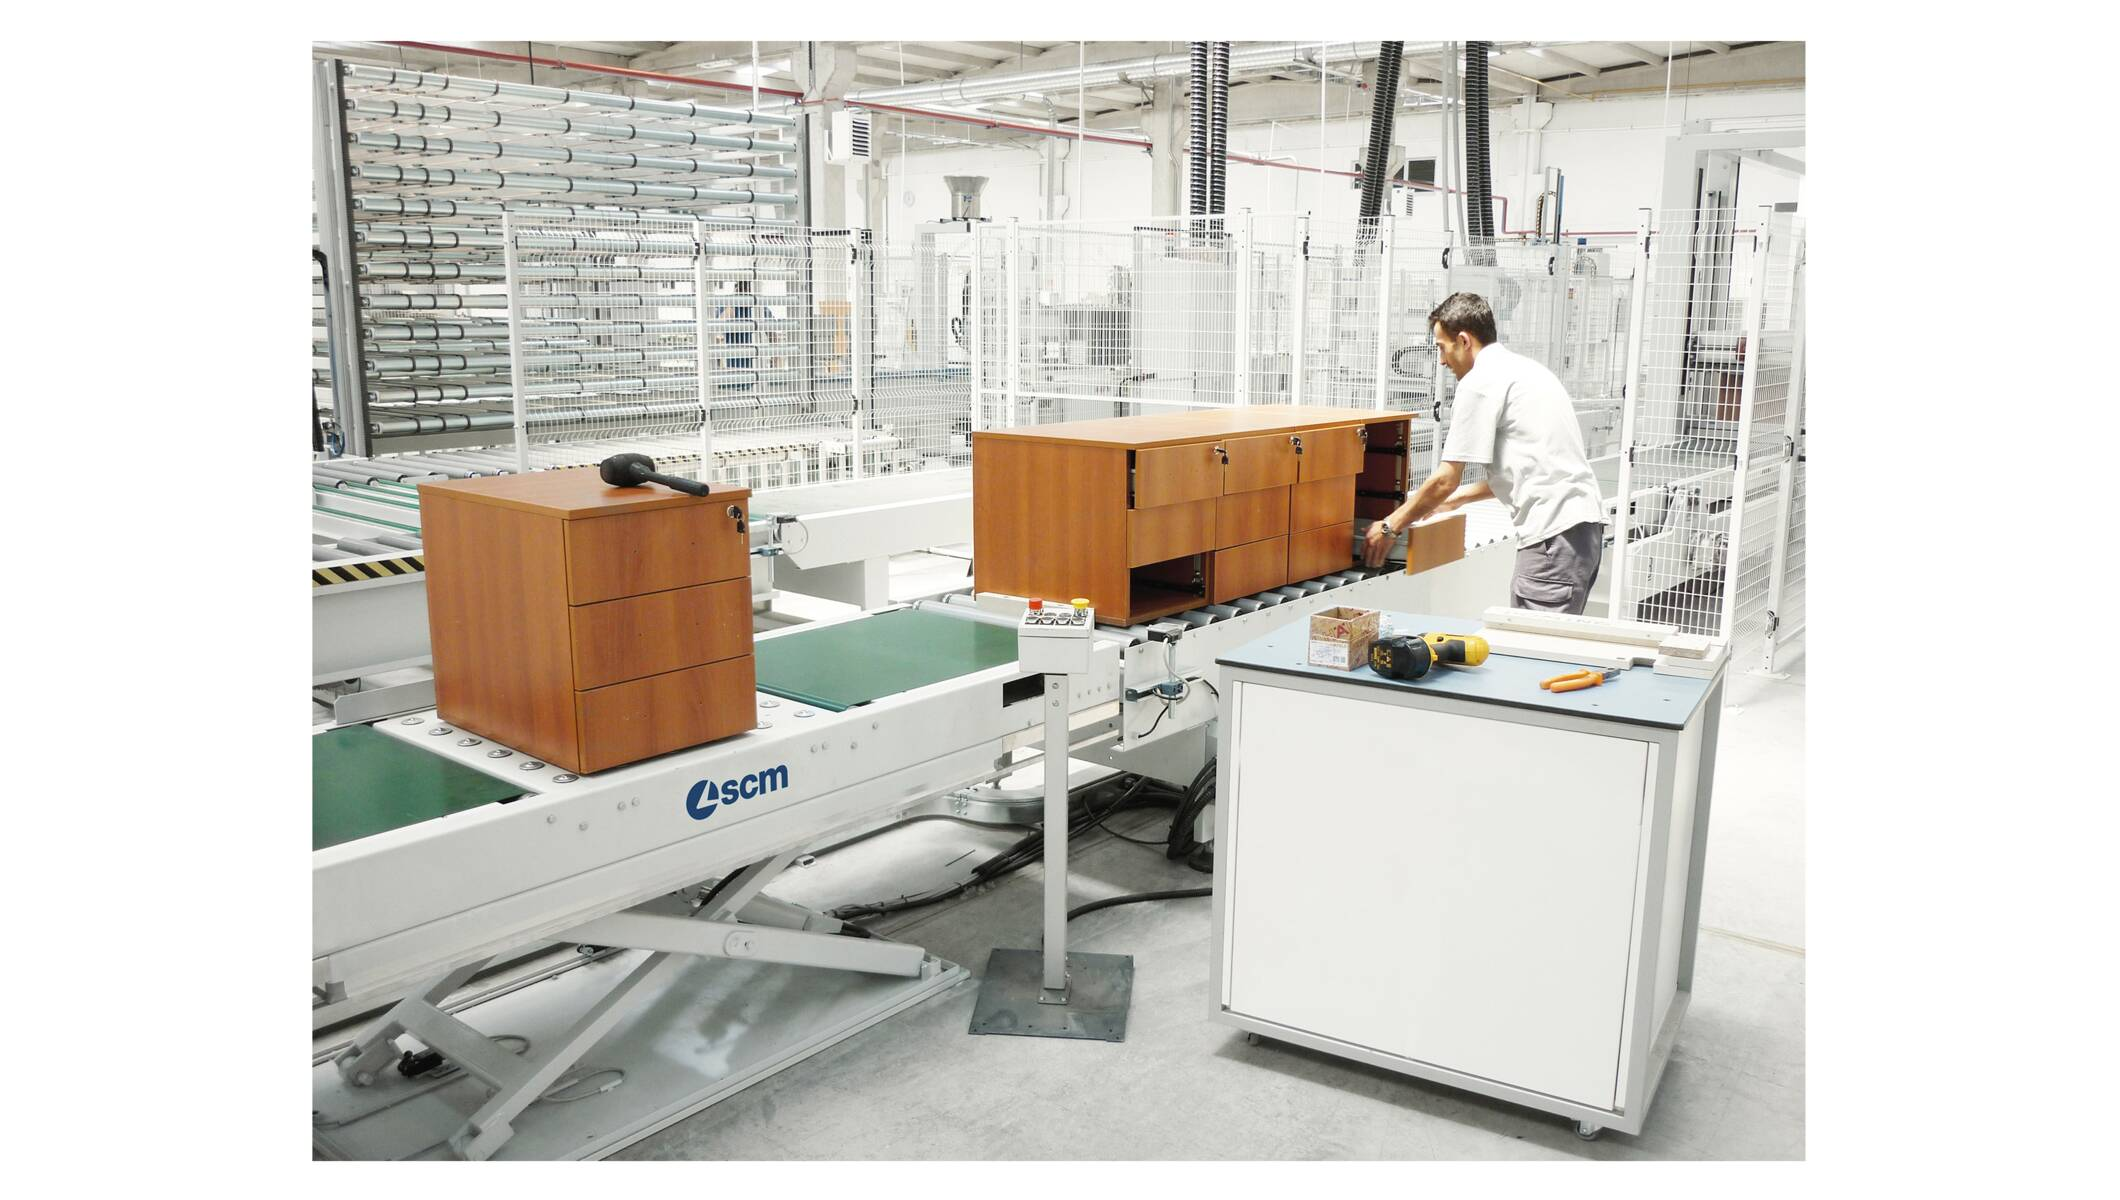 Emballage - Système d'emballage - complete assembly and packaging lines